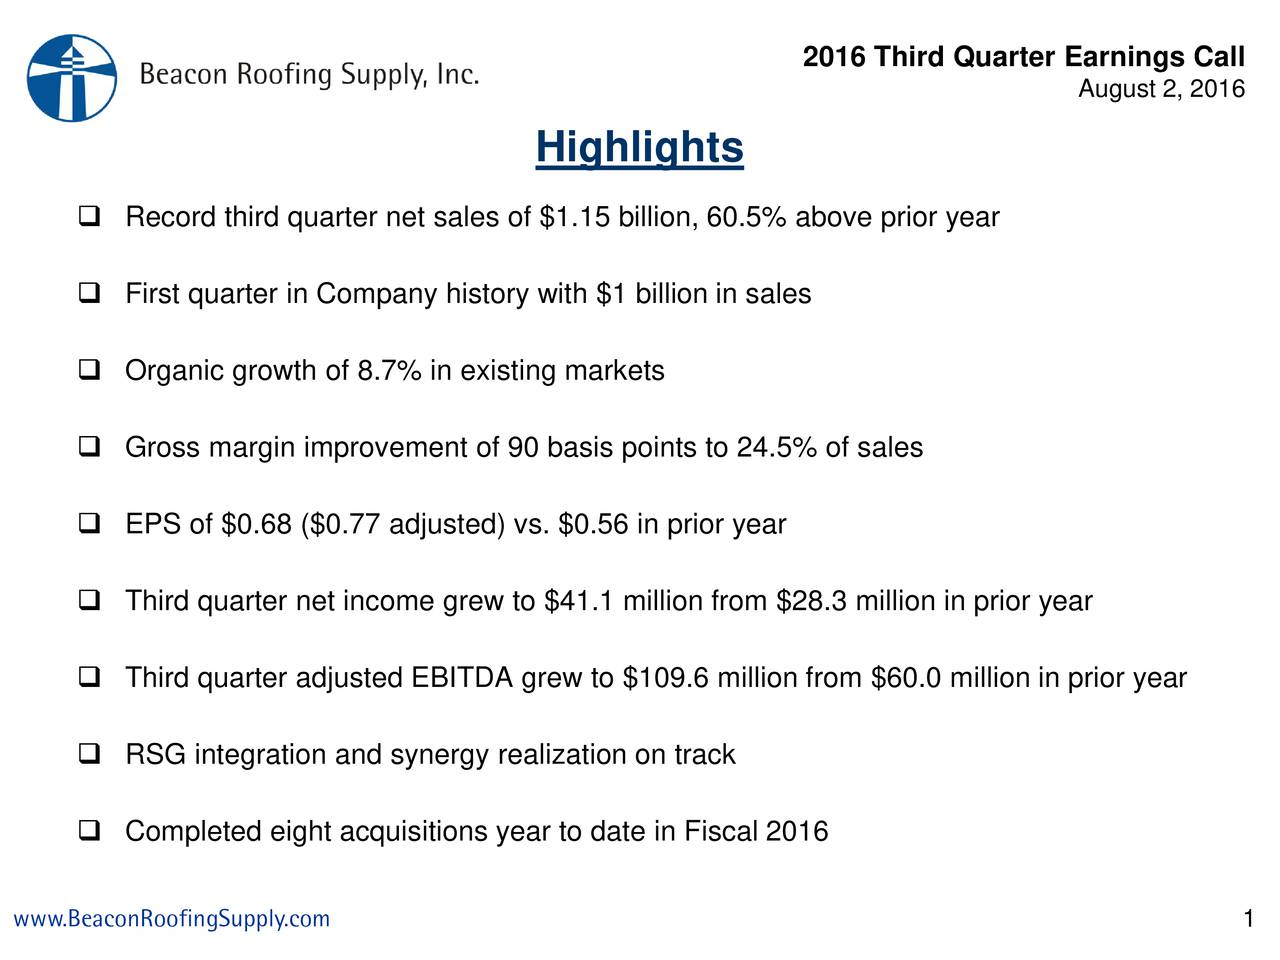 August 2, 2016 Highlights Record third quarter net sales of $1.15 billion, 60.5% above prior year First quarter in Company history with $1 billion in sales Organic growth of 8.7% in existing markets Gross margin improvement of 90 basis points to 24.5% of sales EPS of $0.68 ($0.77 adjusted) vs. $0.56 in prior year Third quarter net income grew to $41.1 million from $28.3 million in prior year Third quarter adjusted EBITDA grew to $109.6 million from $60.0 million in prior year RSG integration and synergy realization on track Completed eight acquisitions year to date in Fiscal 2016 www.BeaconRoofingSupply.com 1